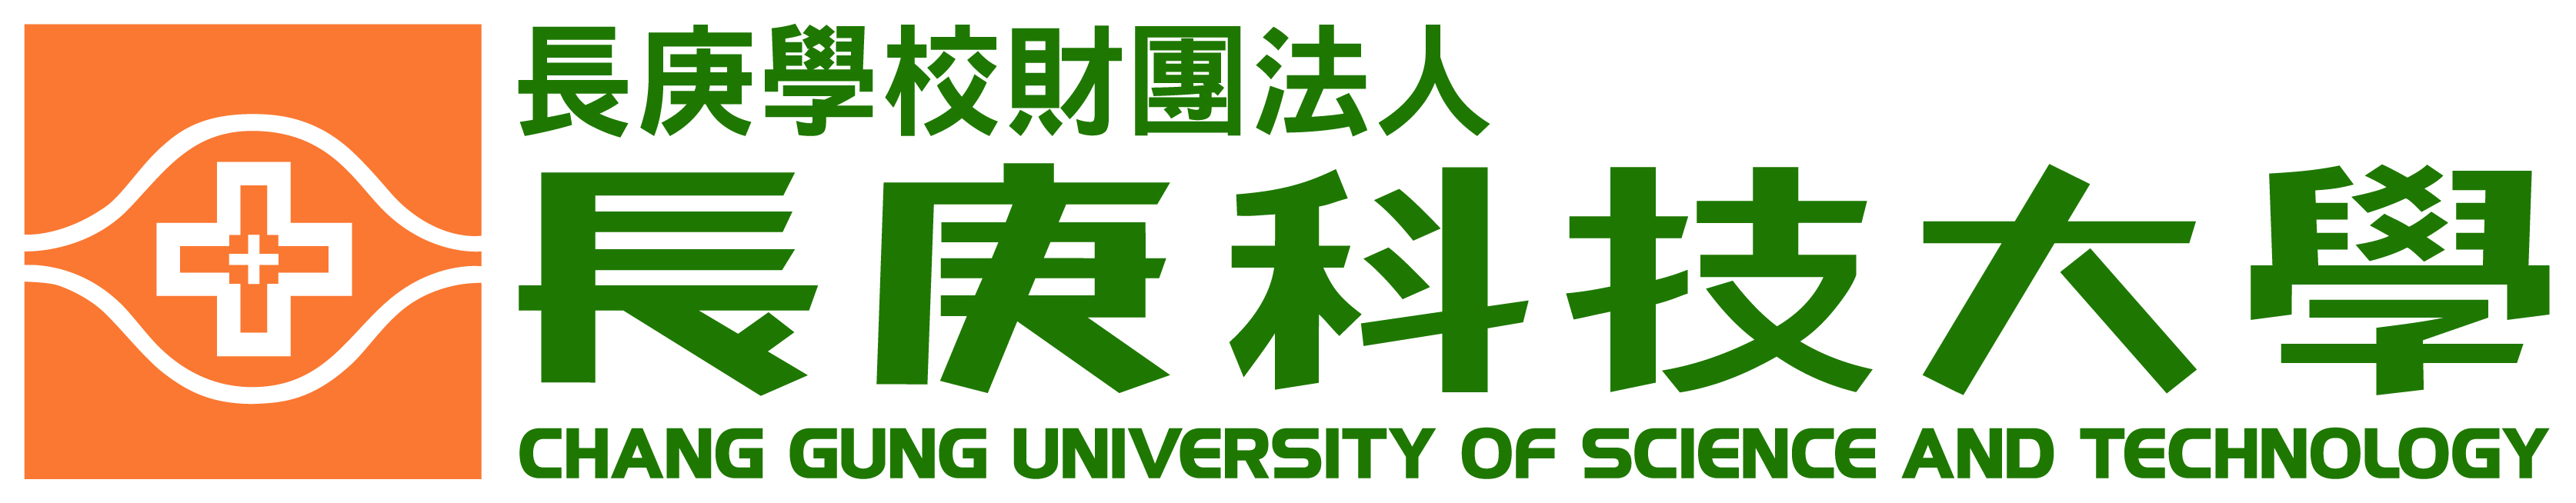 Chang Gung University of Science of Technology